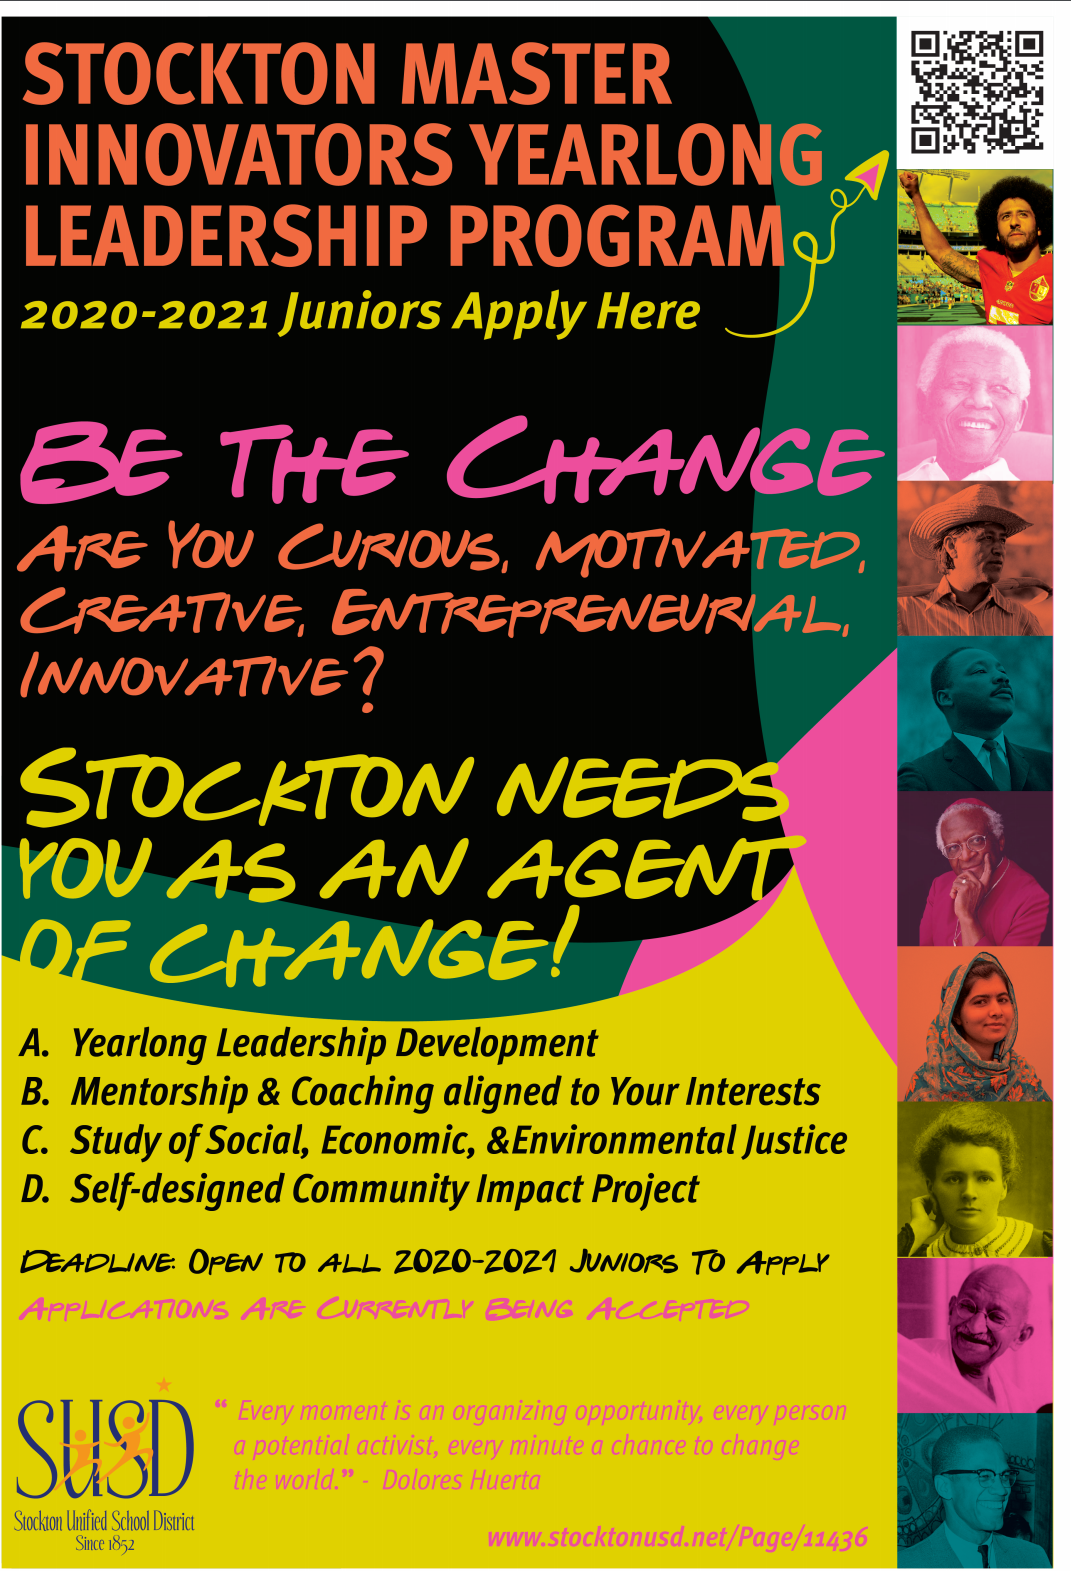 Stockton Mater Innovators 2020-2021- Youth Leadership Opportunity